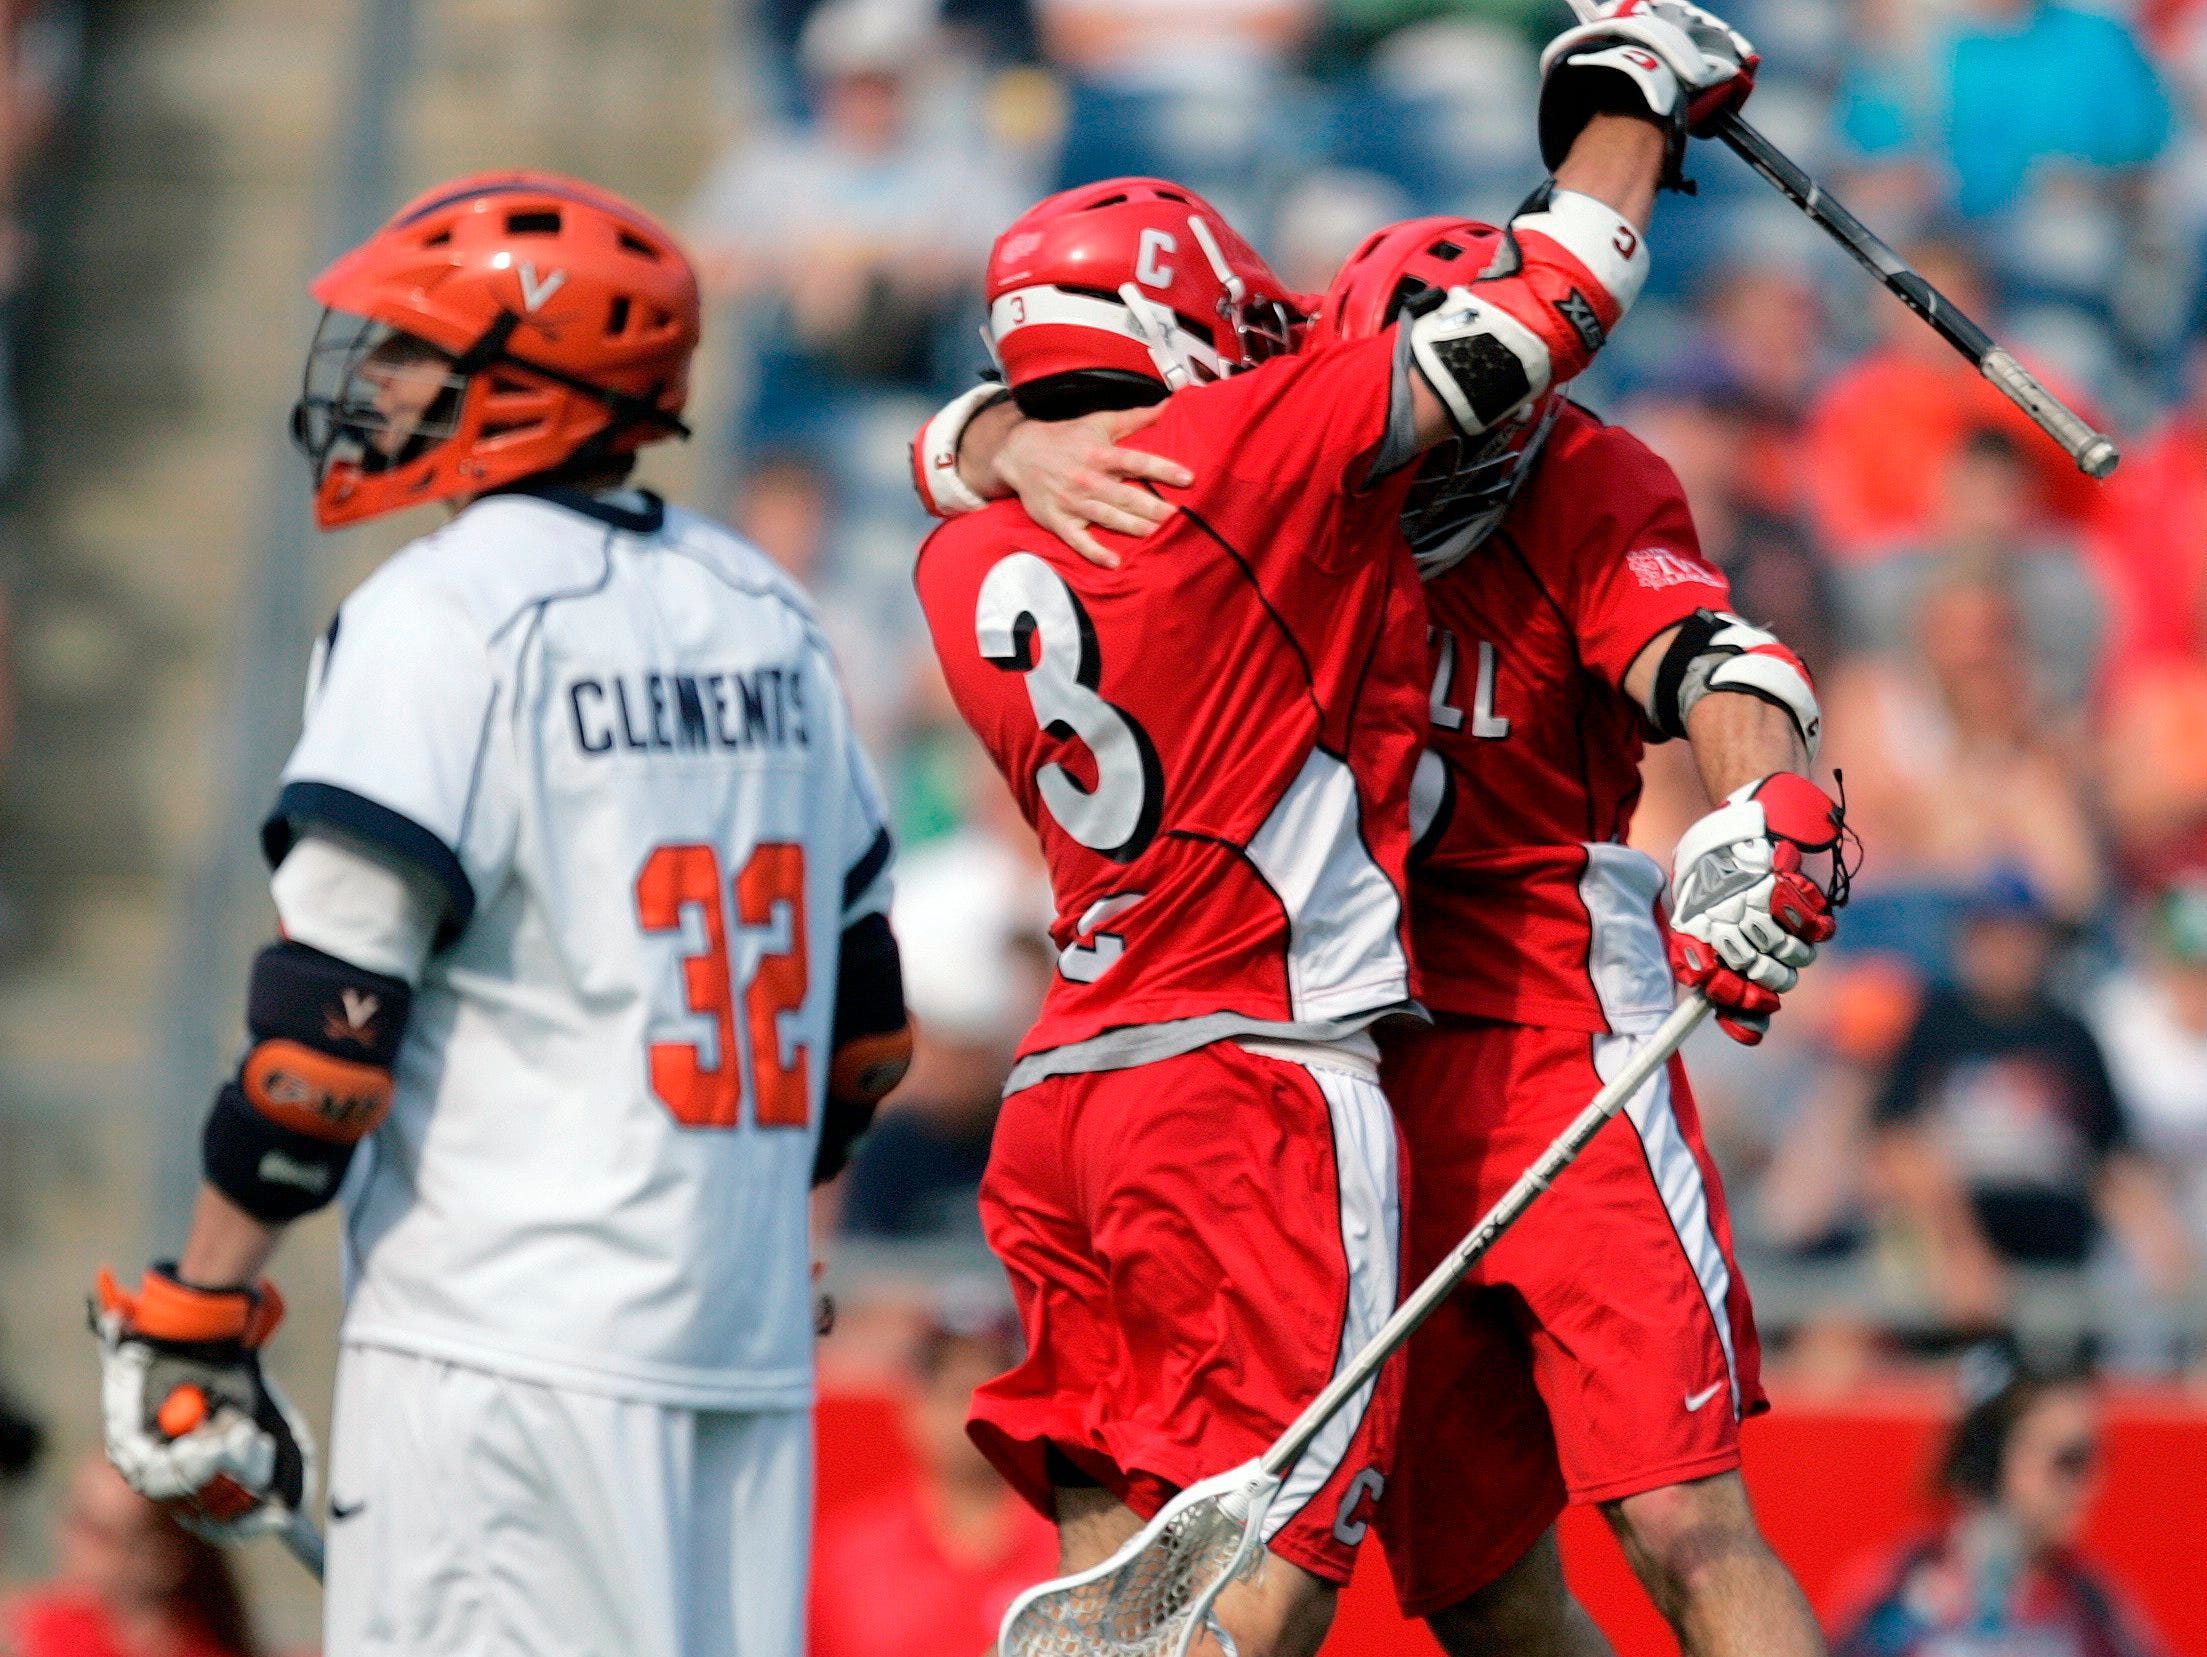 Cornell's Max Seibald, right, celebrates his goal with teammate Rob Pannell (3) as Virginia's Chris Clements (32) looks away in the fourth quarter of an NCAA Division 1 men's lacrosse semifinal game in Foxborough, Mass., Saturday, May 23, 2009. Cornell won 15-6.